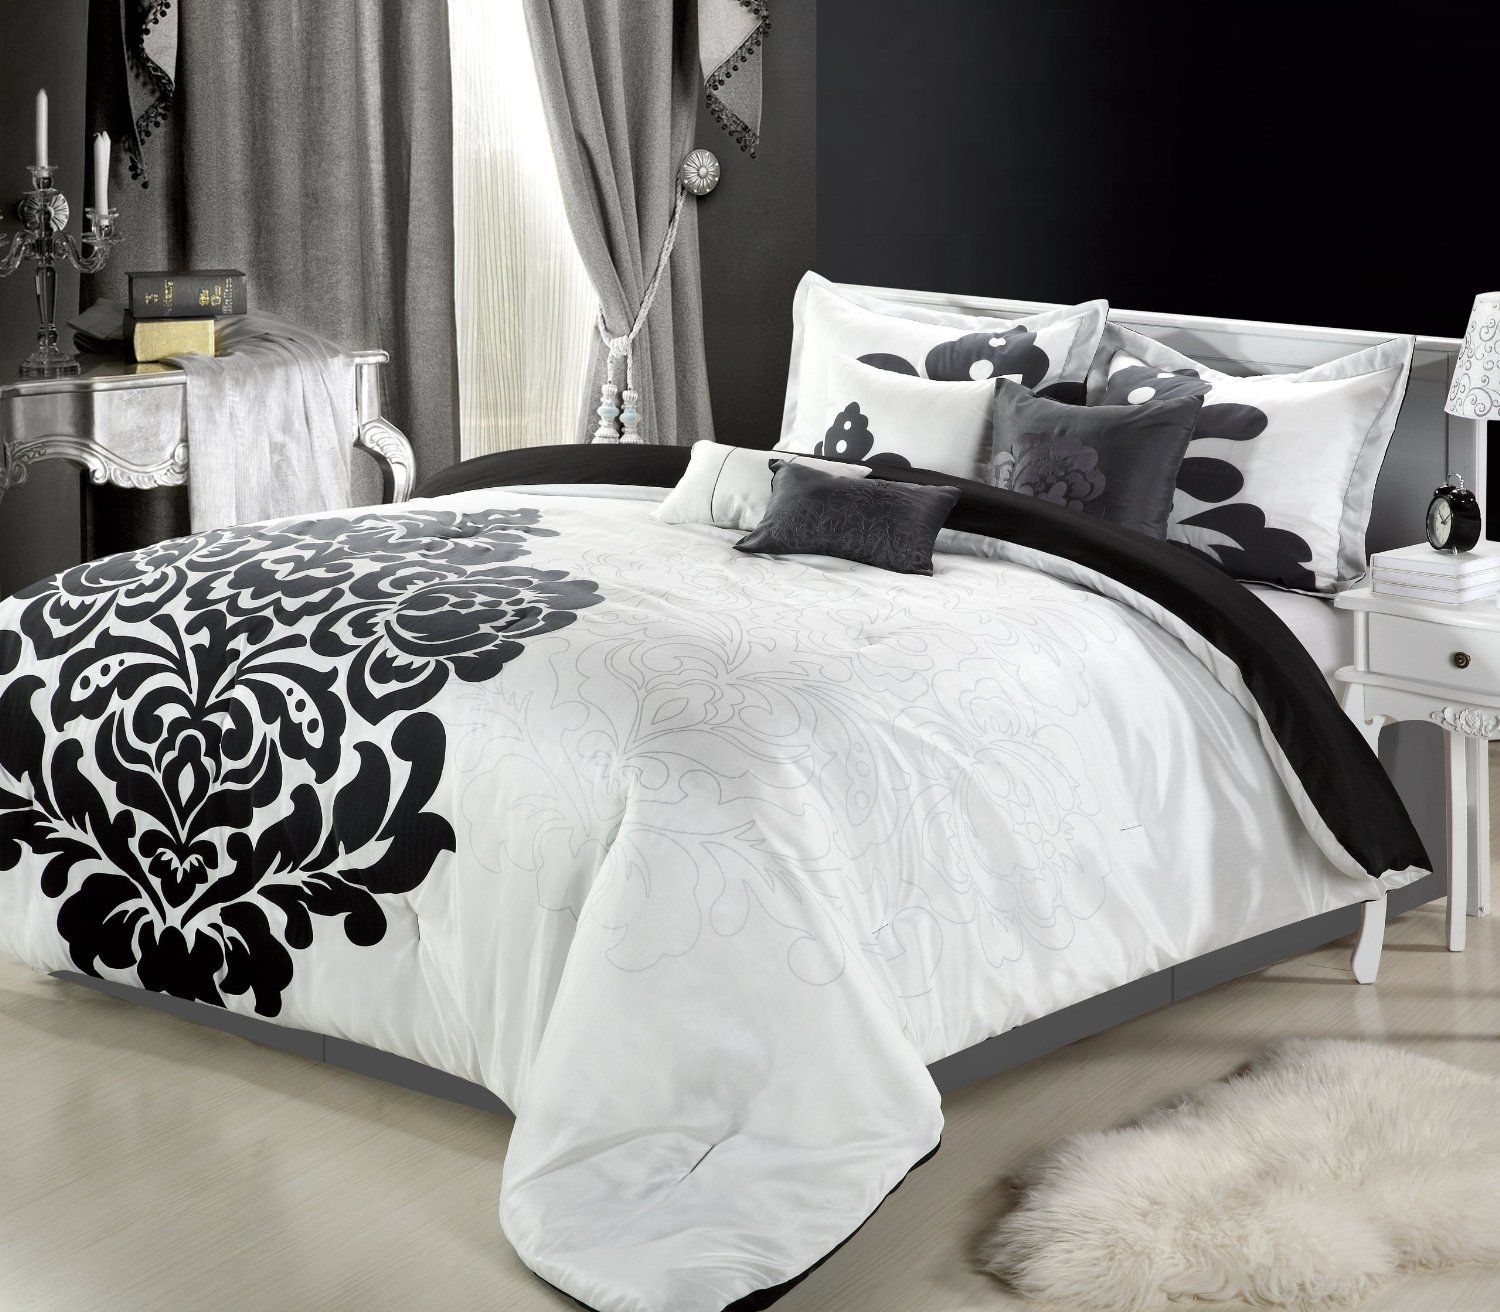 Pin On Bed Linen Design